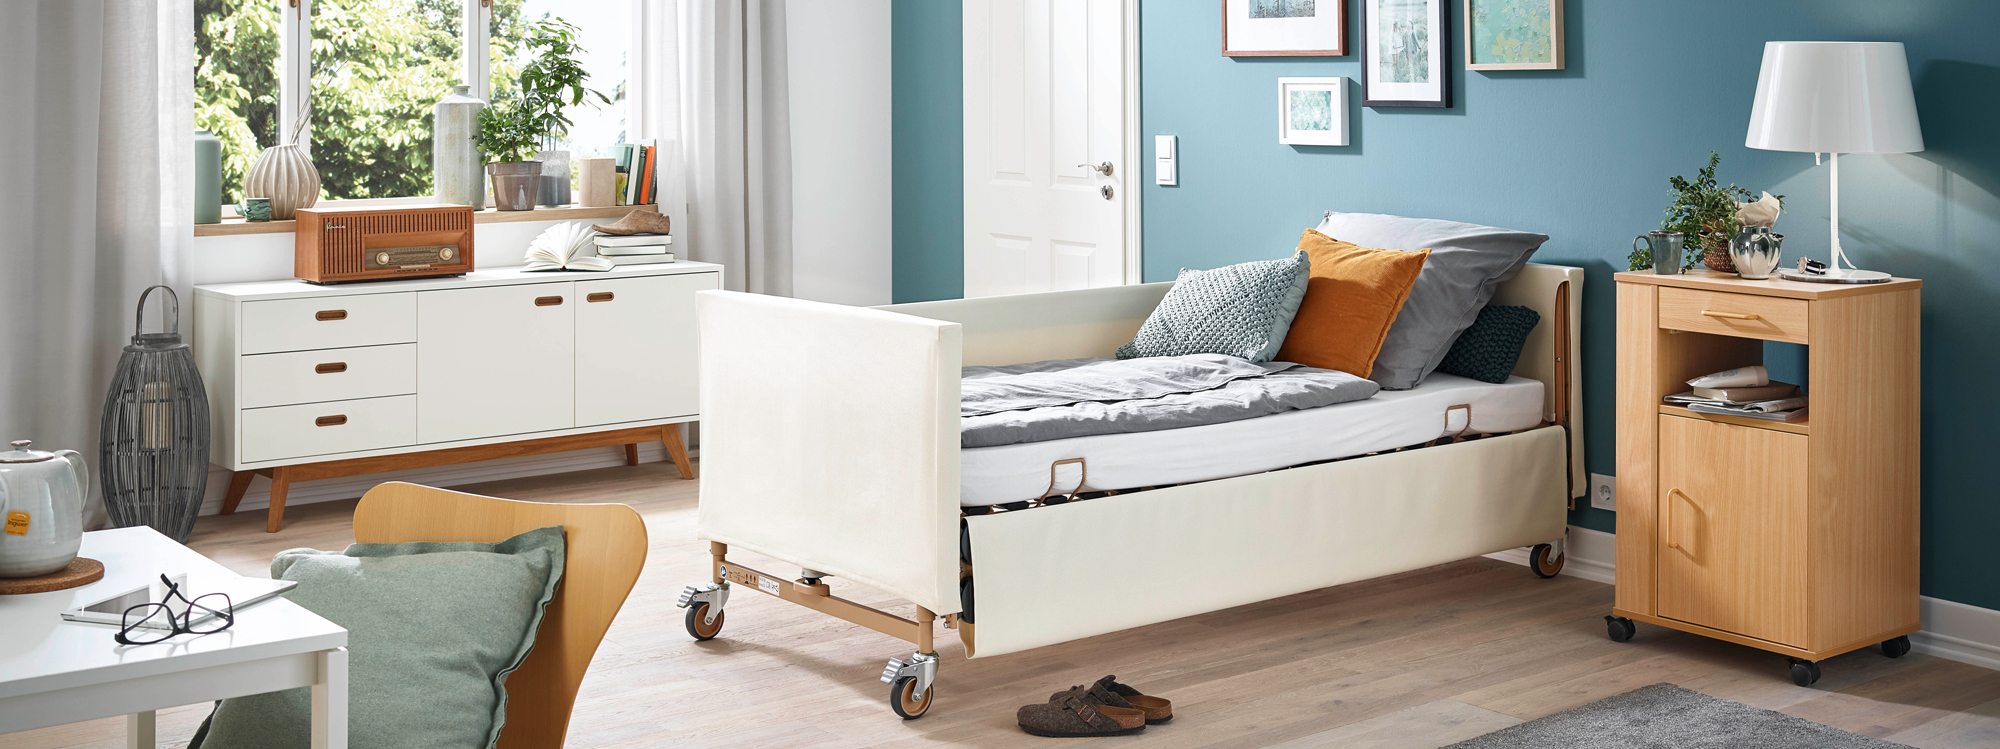 Softcovers in 7 attractive colours for the Dali care bed range